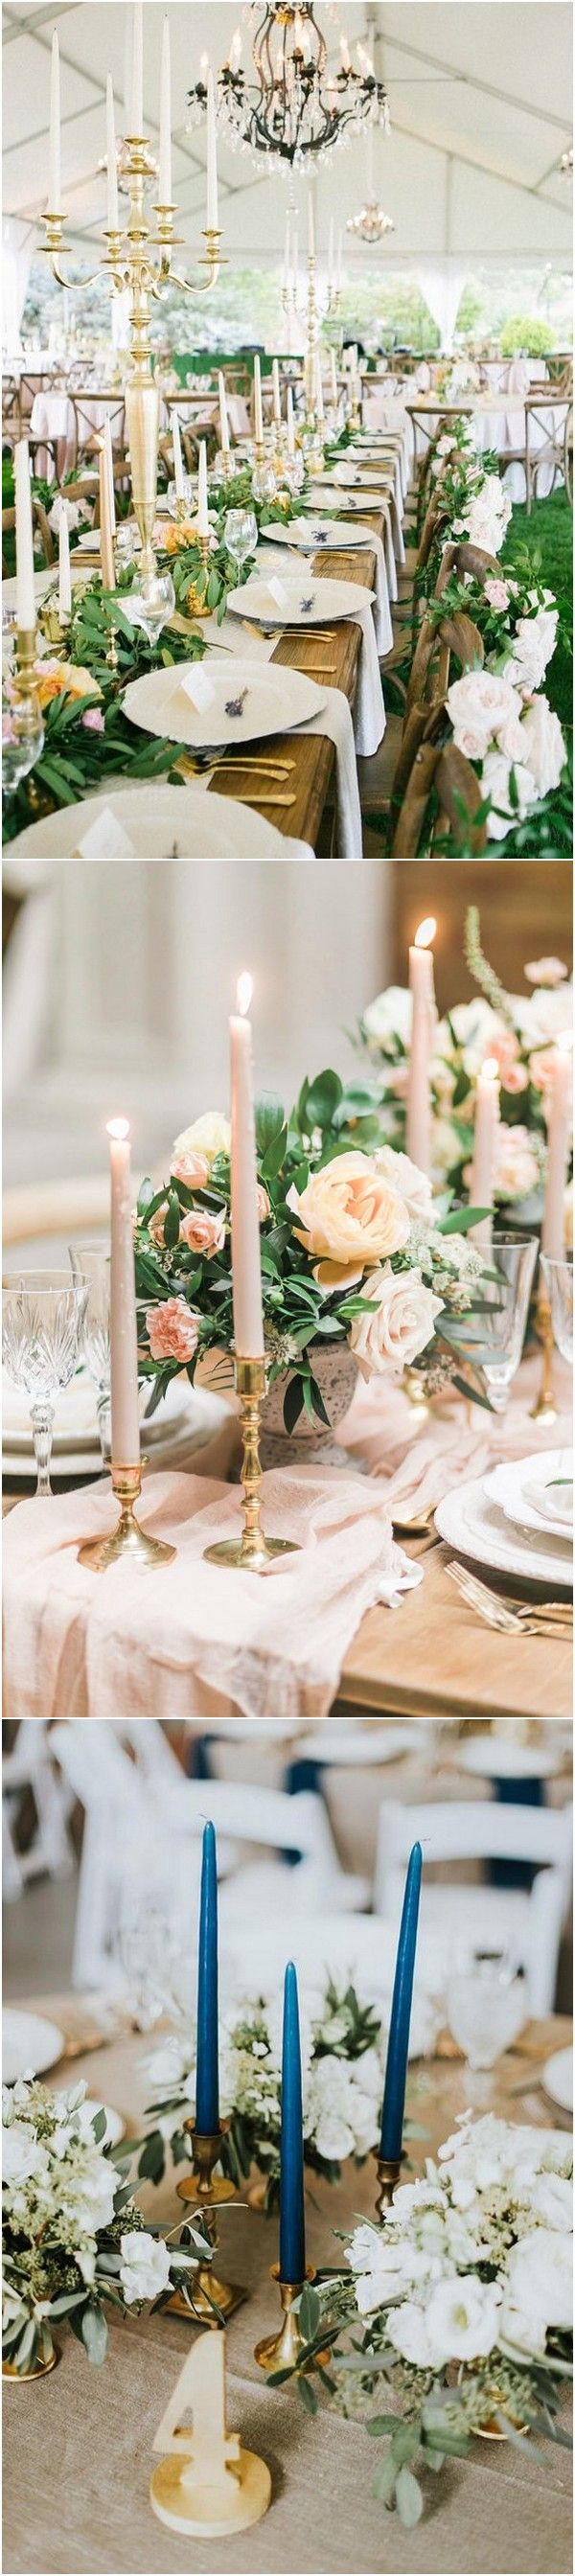 Wedding decorations beach december 2018 Trending  Fabulous Wedding Table Decoration Ideas with Taper